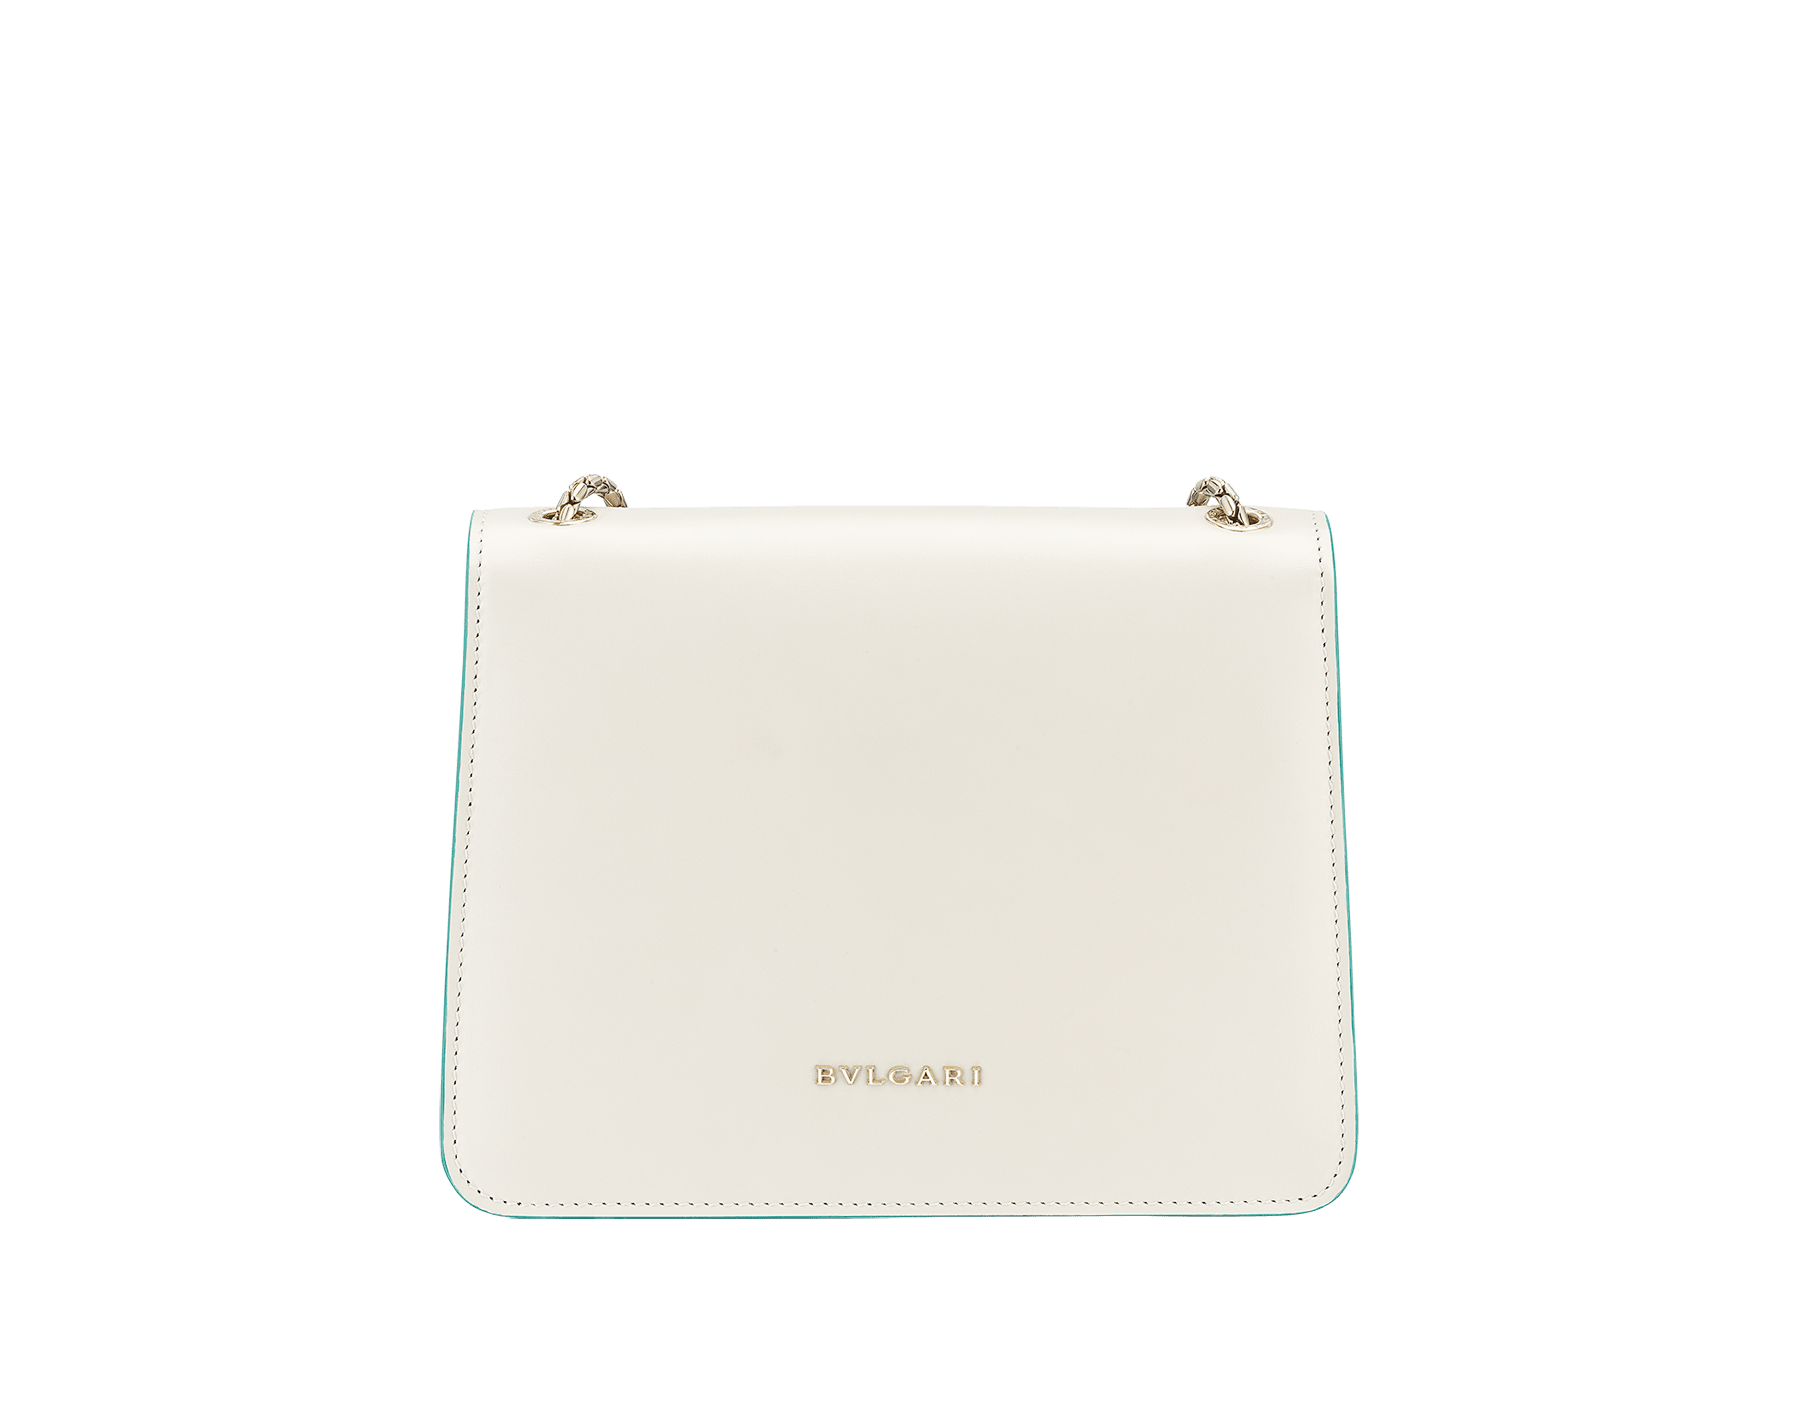 """Serpenti Forever"" crossbody bag in white agate calf leather with two arctic jade butterflies embroidered. Iconic snakehead closure in light gold plated brass enriched with arctic jade and white agate enamel and black onyx eyes. 289247 image 3"